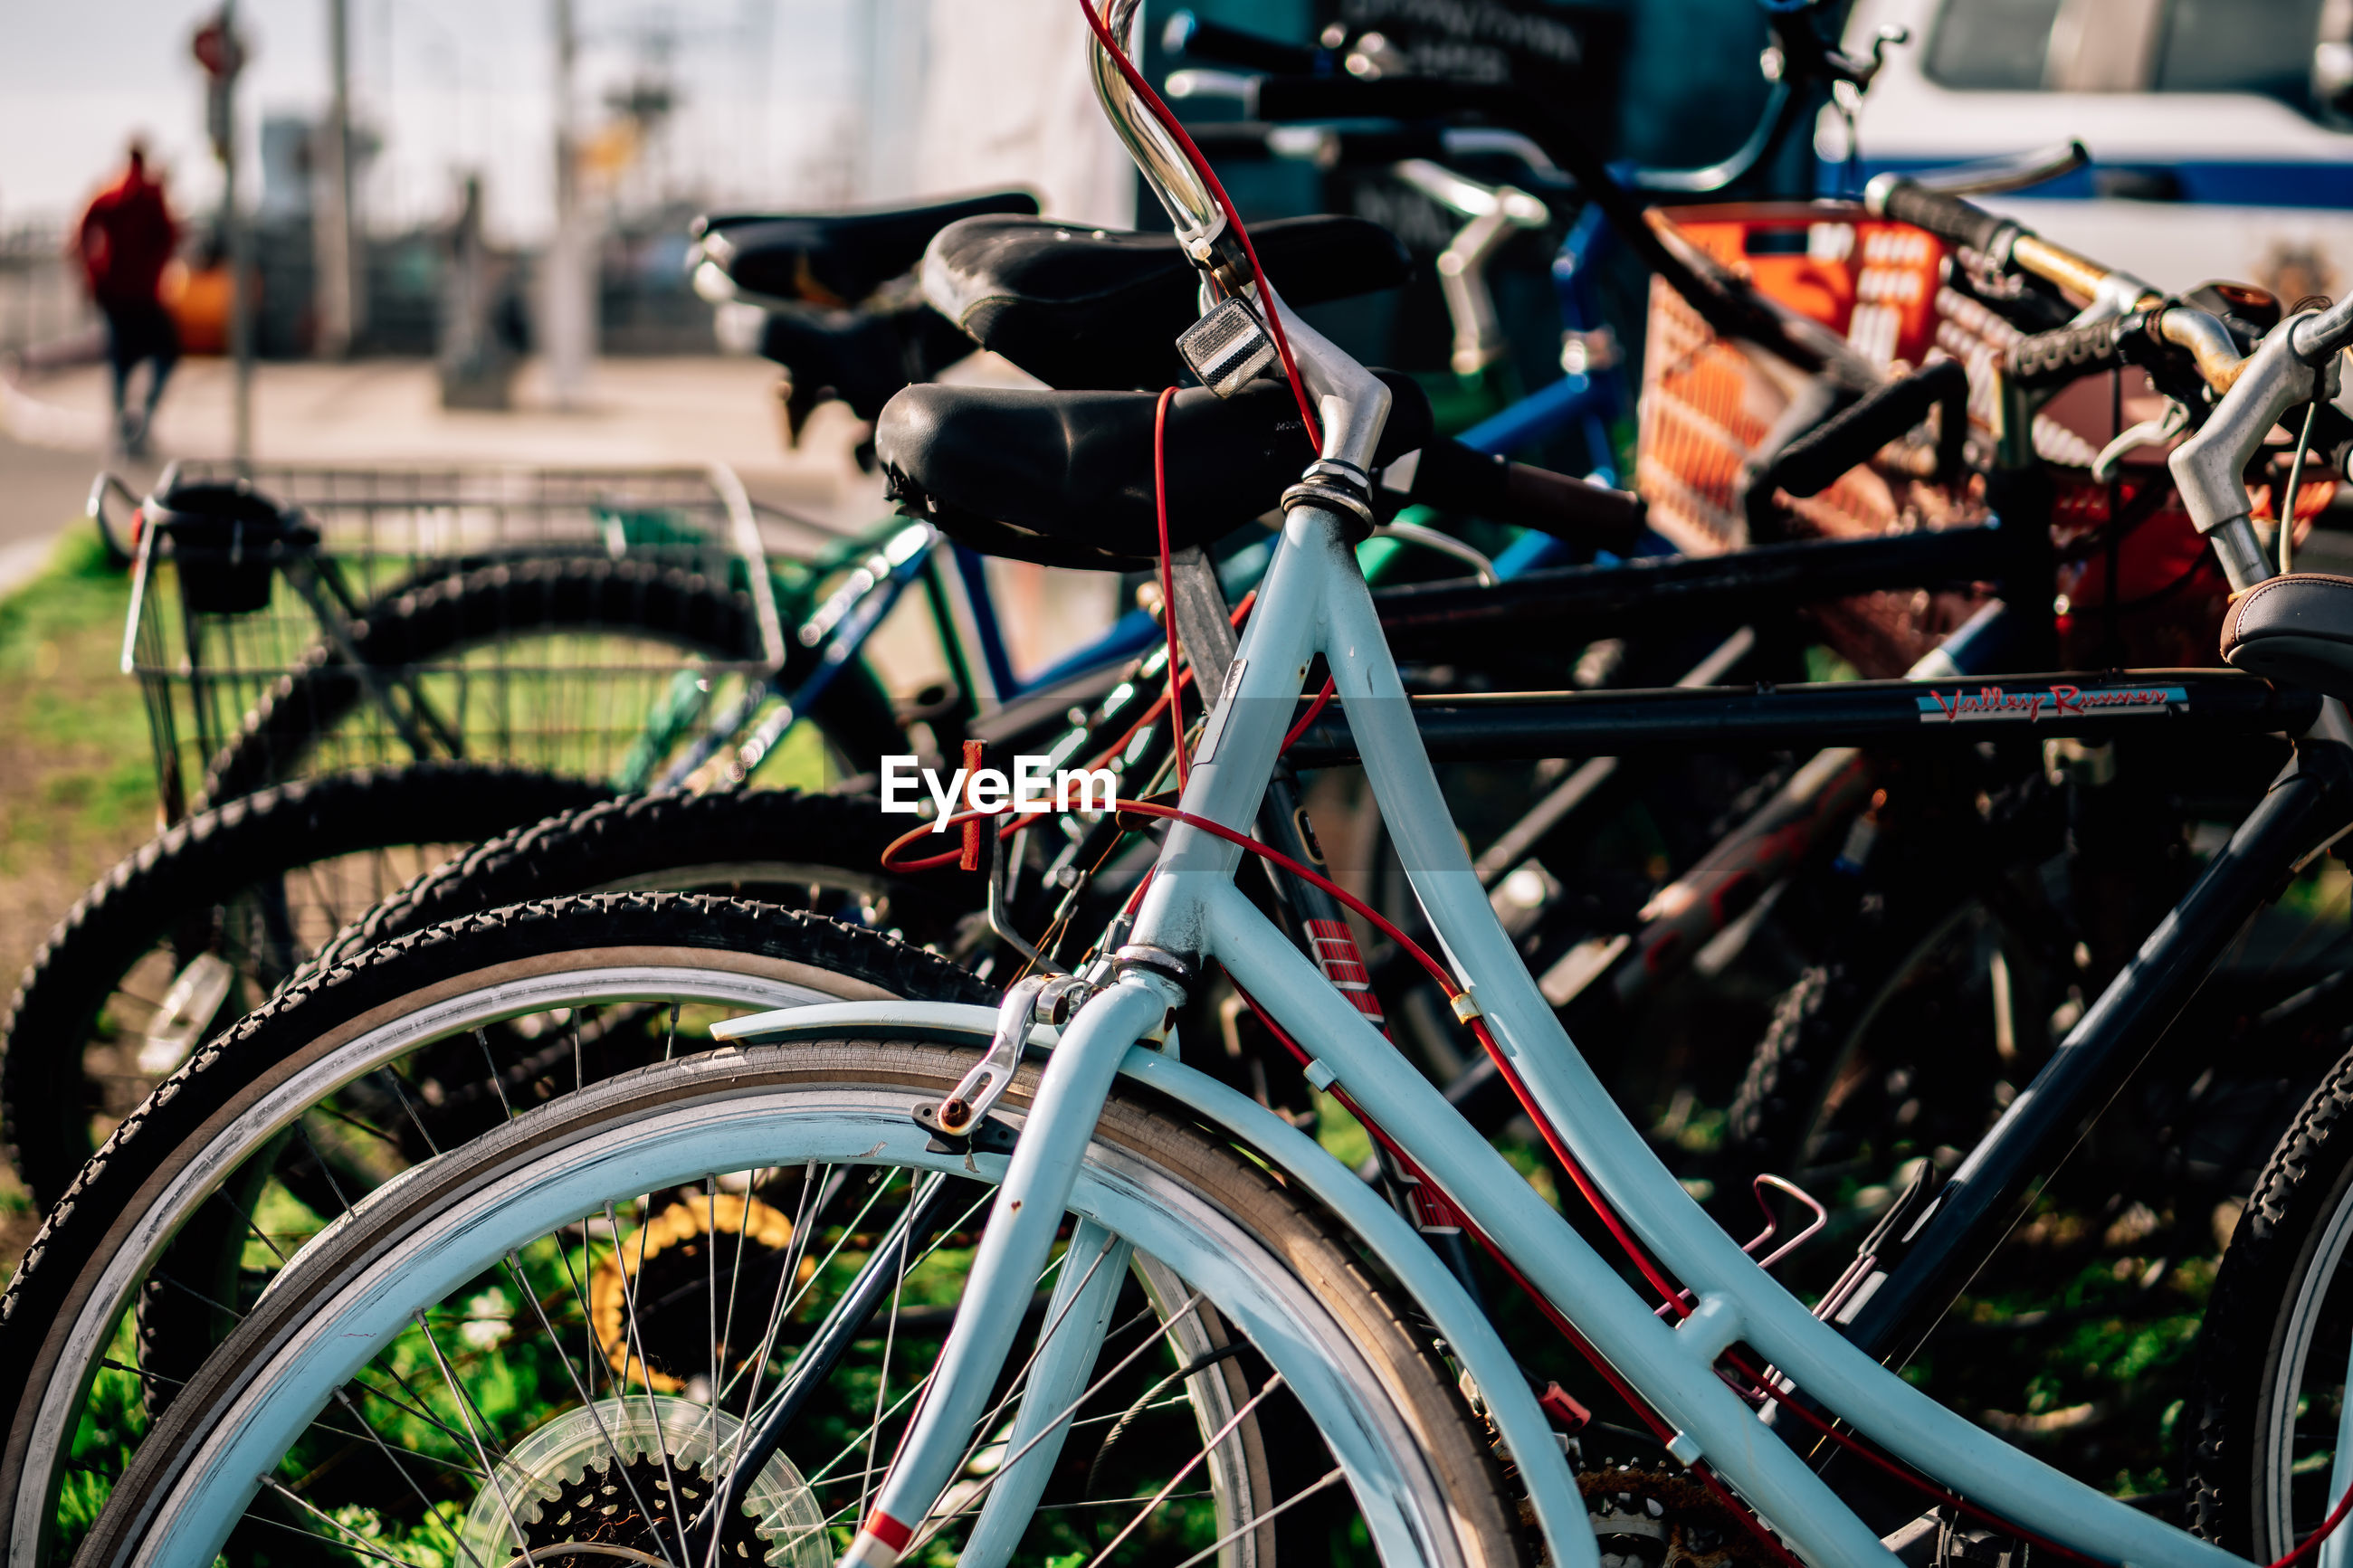 CLOSE-UP OF BICYCLE PARKED IN ROW AGAINST CITY